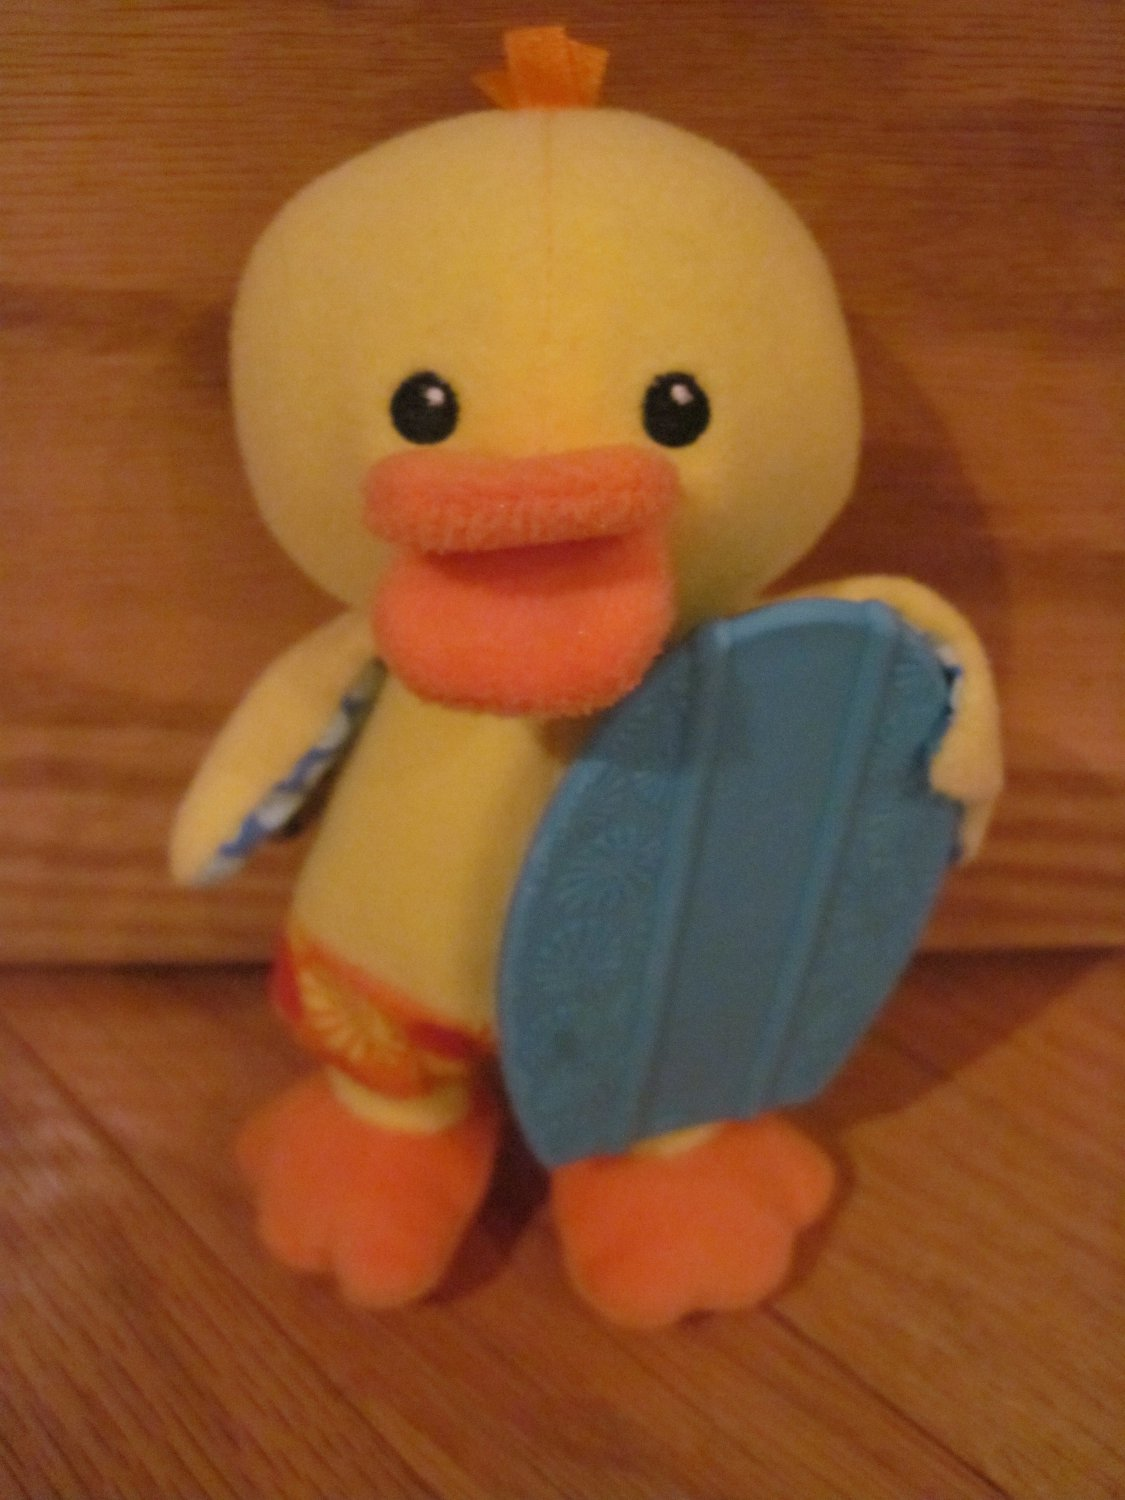 Infantino Plush Yellow Duck Chick Blue Teether Surf Board 158-231